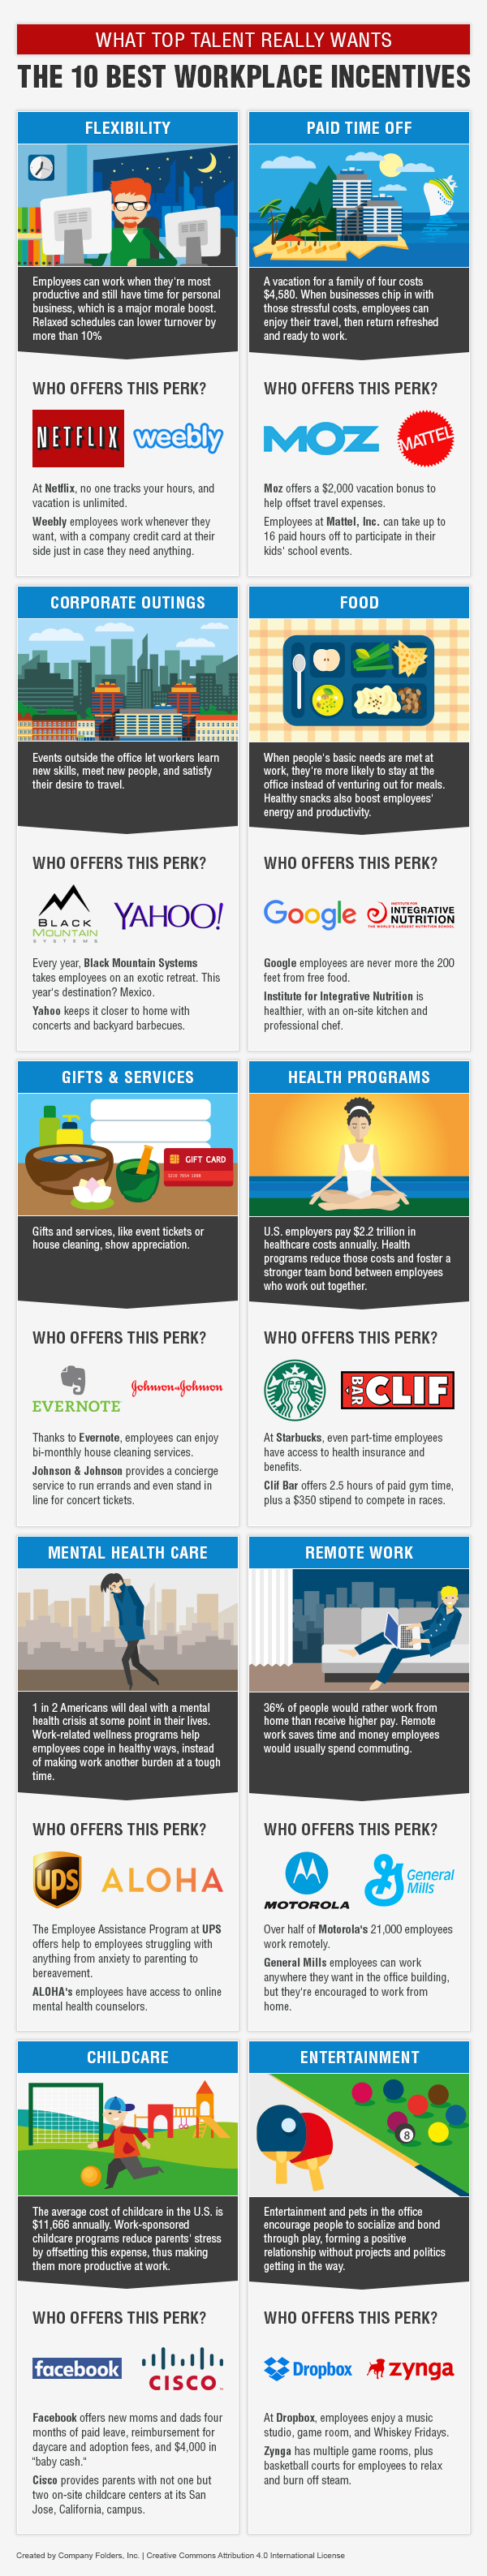 Workplace Perks: What to Look For and Why They Matter #Infographic